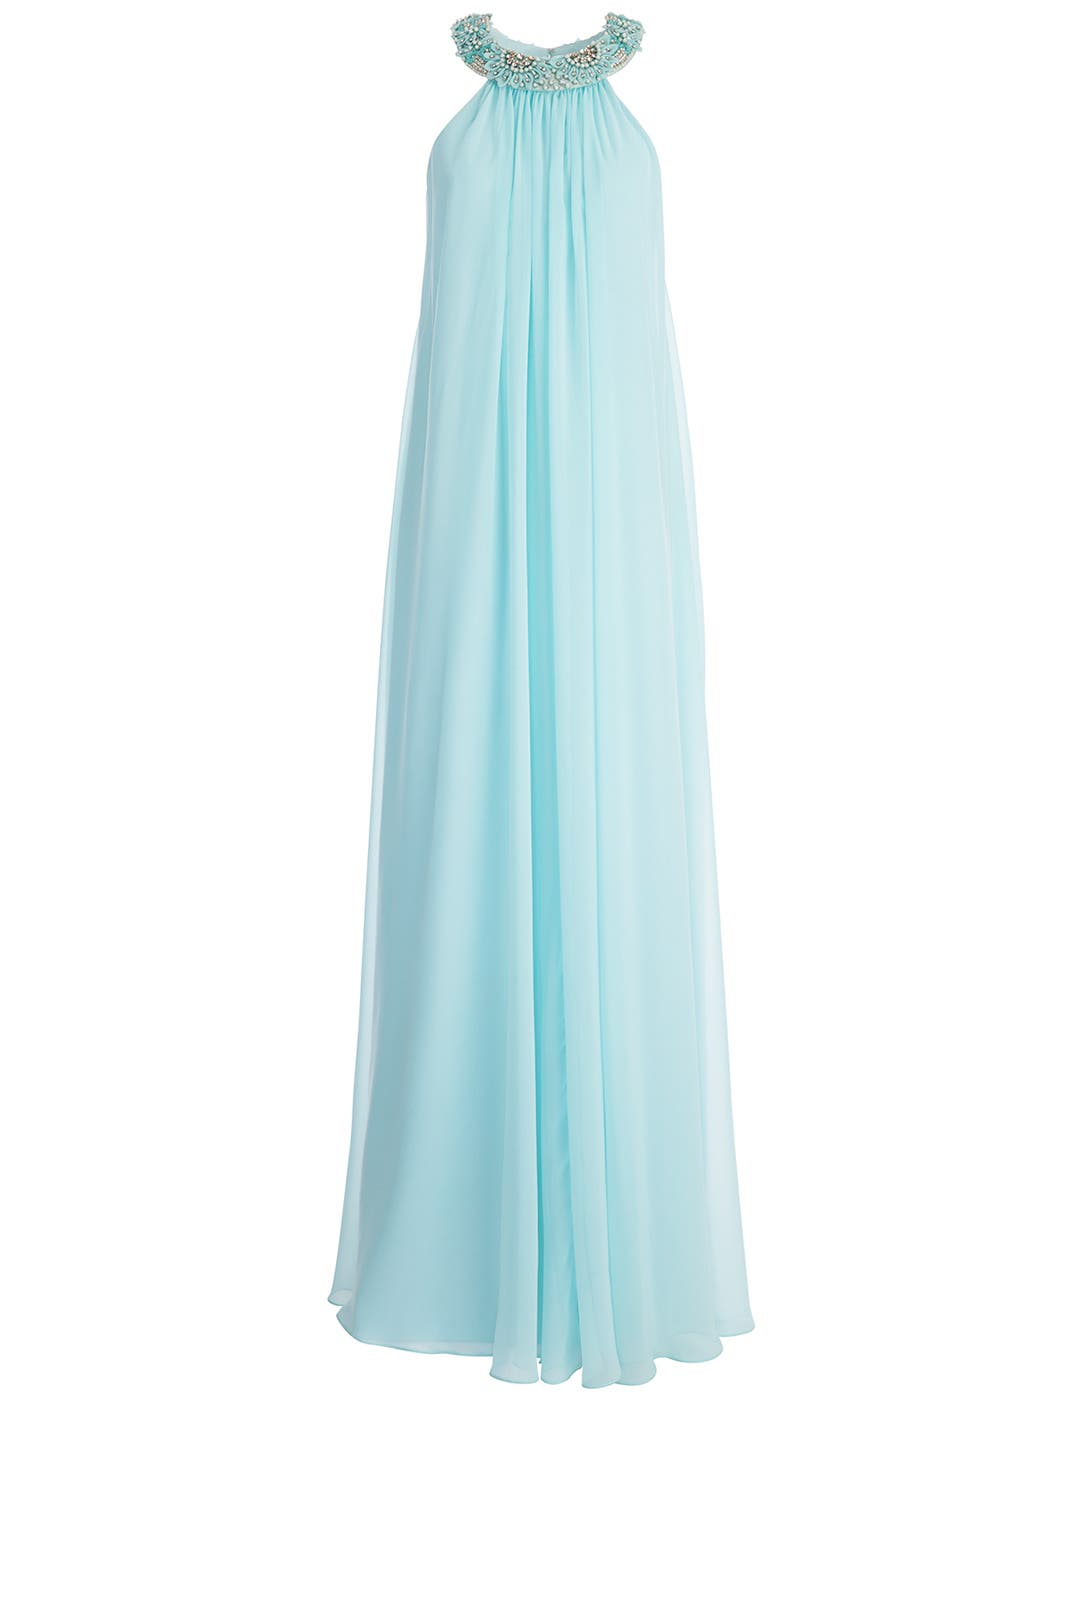 Greek Islands Gown by Badgley Mischka for $95 - $115 | Rent the Runway